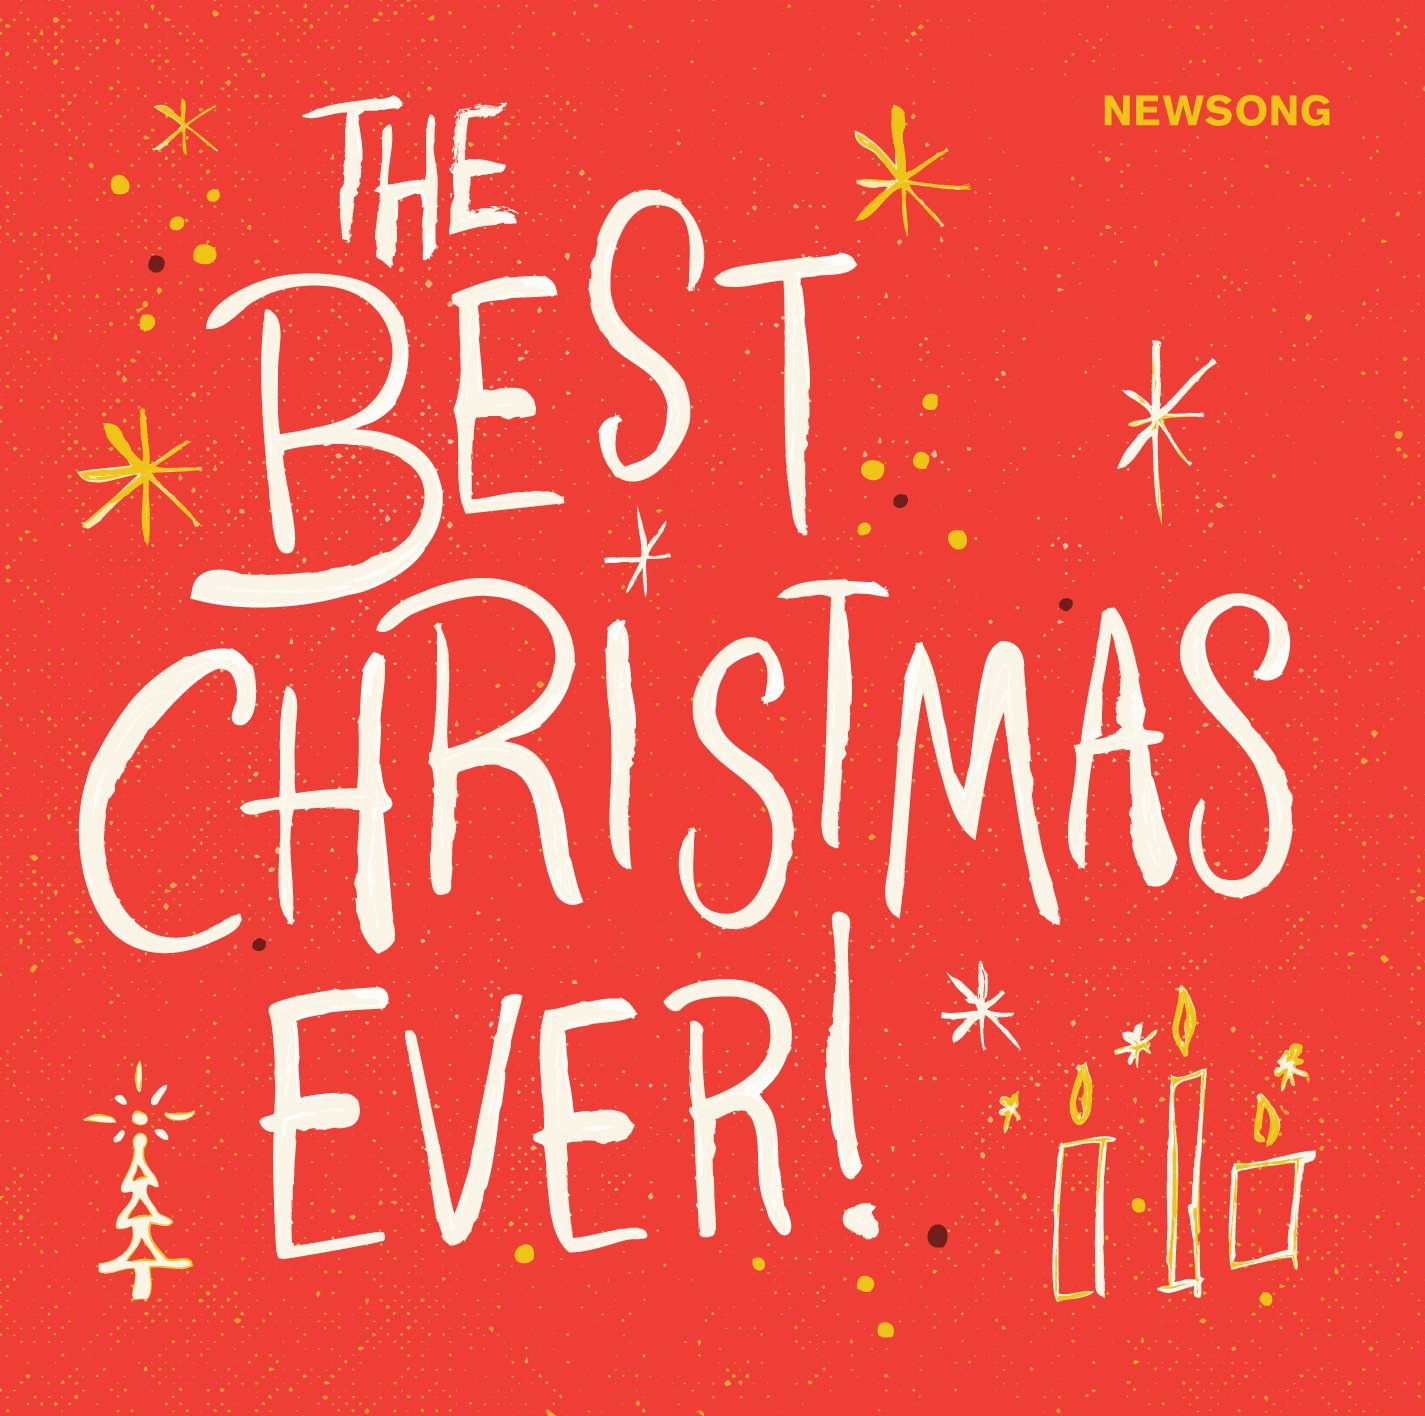 newsong the best christmas ever amazoncom music - The Best Christmas Ever